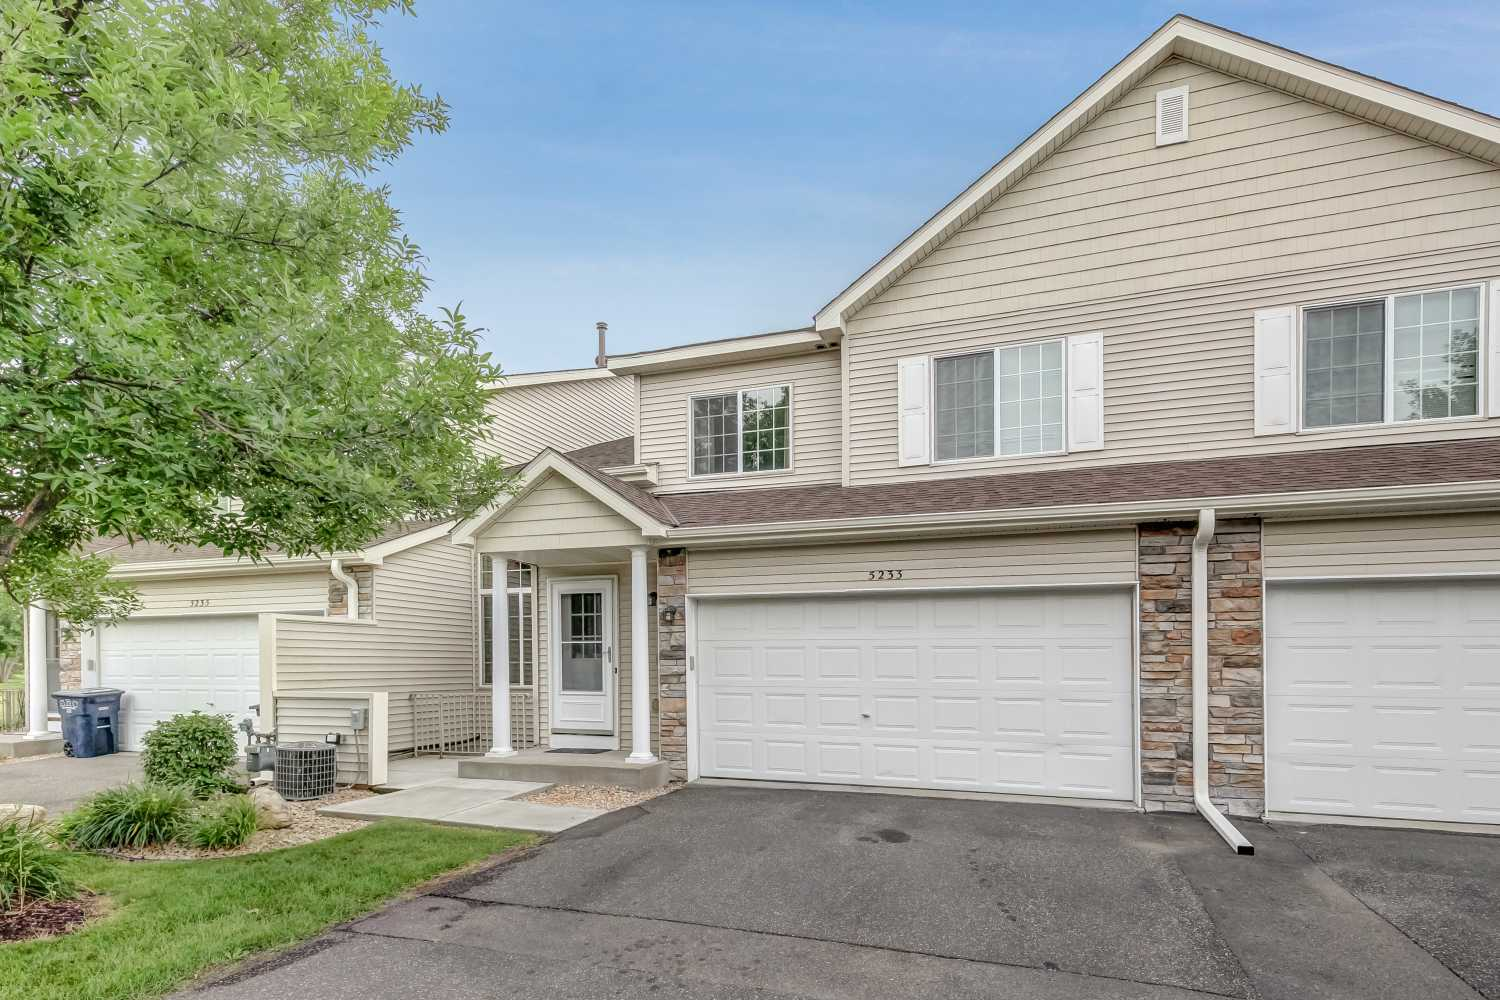 Sold -Forest Lake - 5233 207th St N - $185k